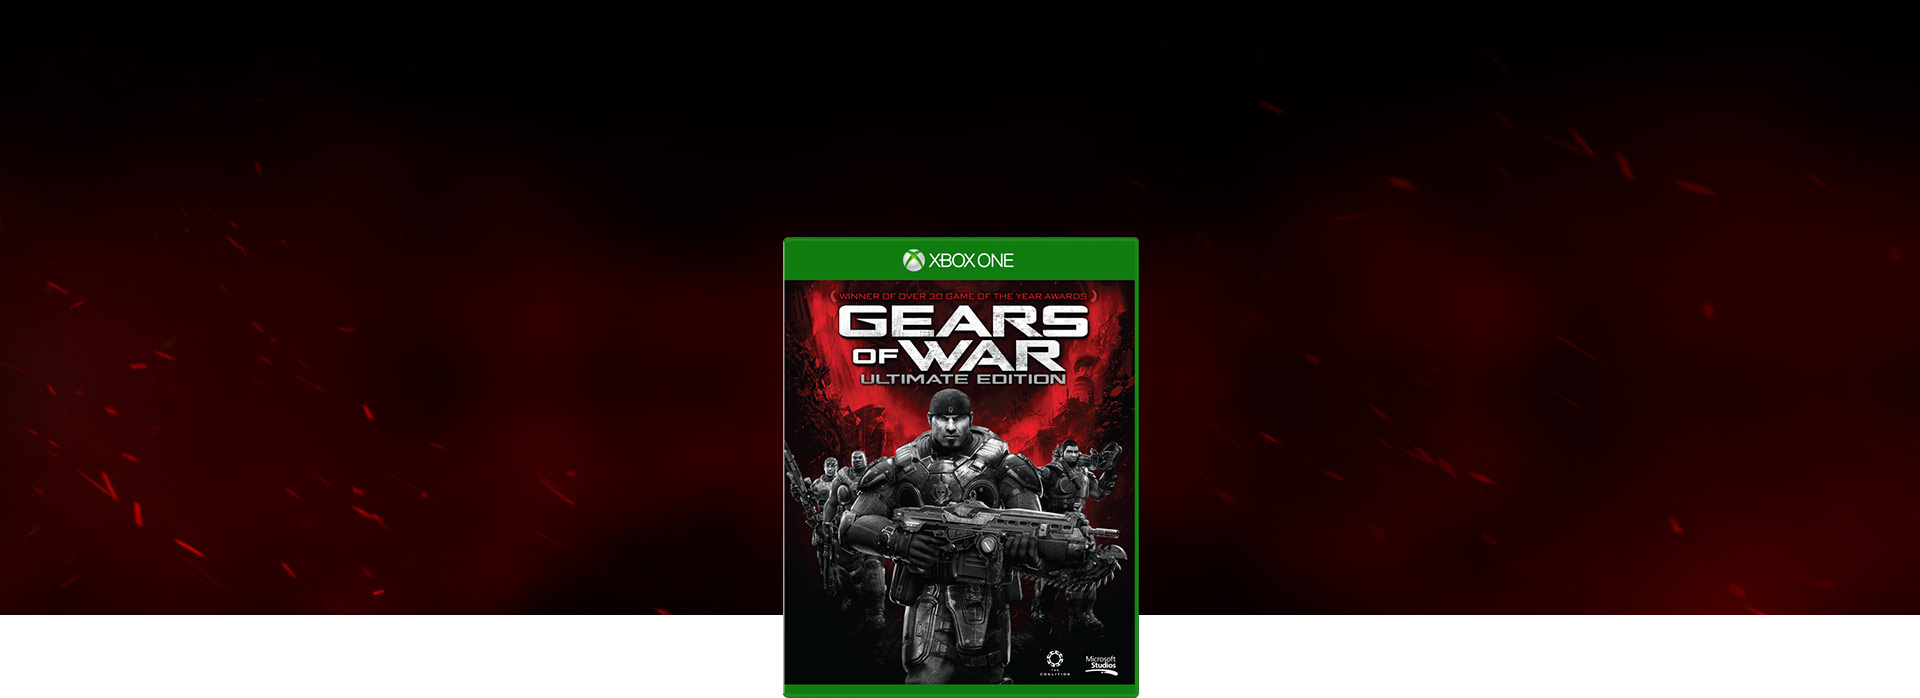 Image de la boîte Gears of War Ultimate Edition